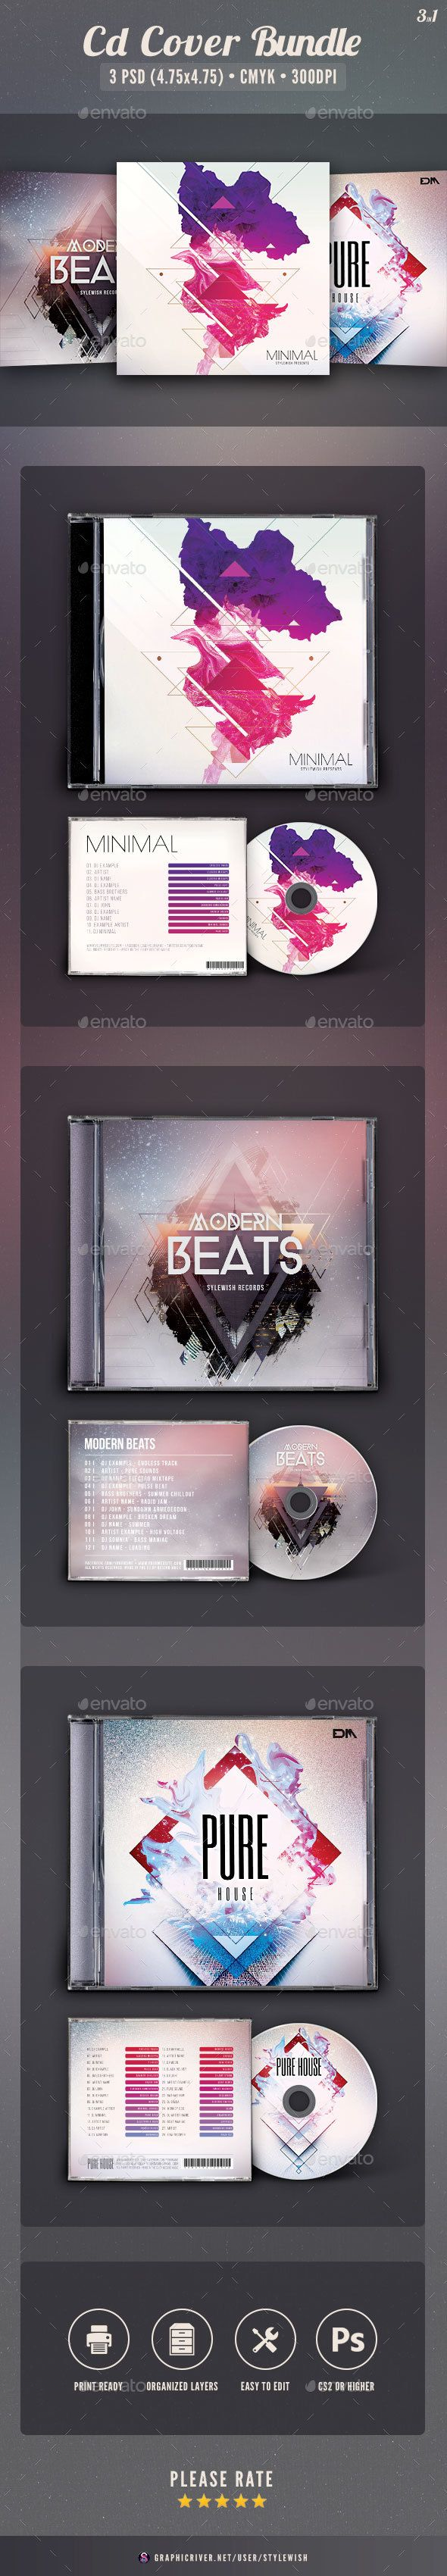 Abstract CD Cover Template PSD Bundle